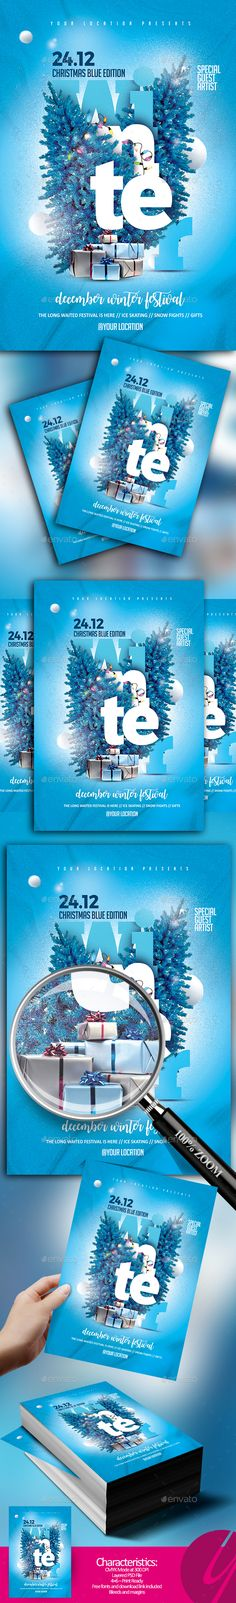 Winter #Festival - Events #Flyers